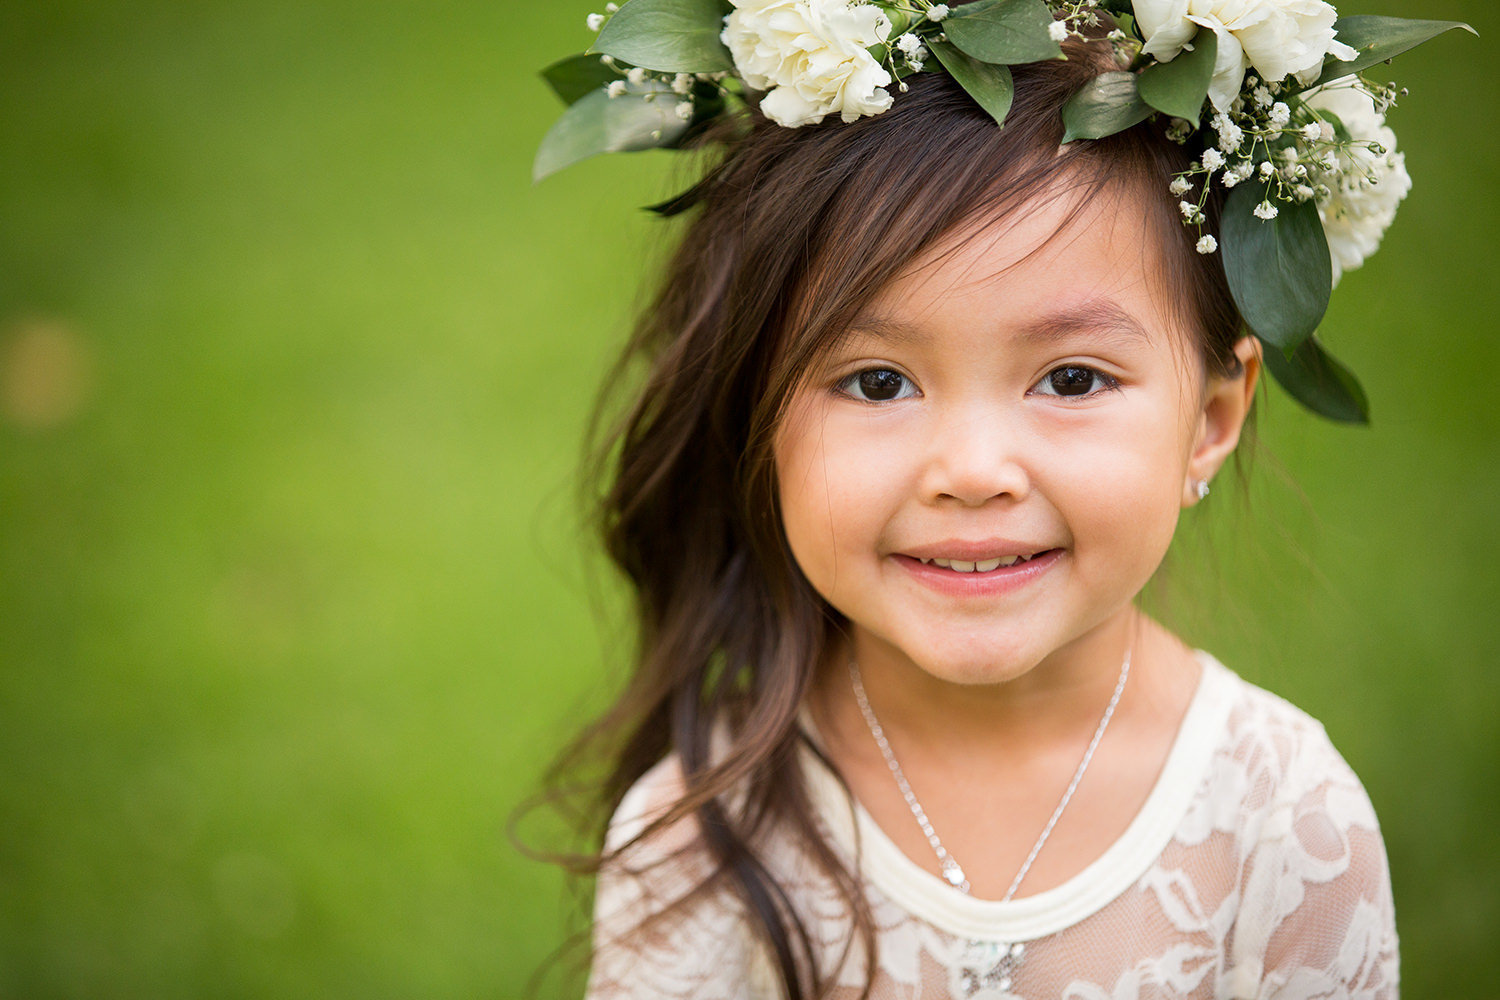 cute flower girl with flower crown for luce loft wedding